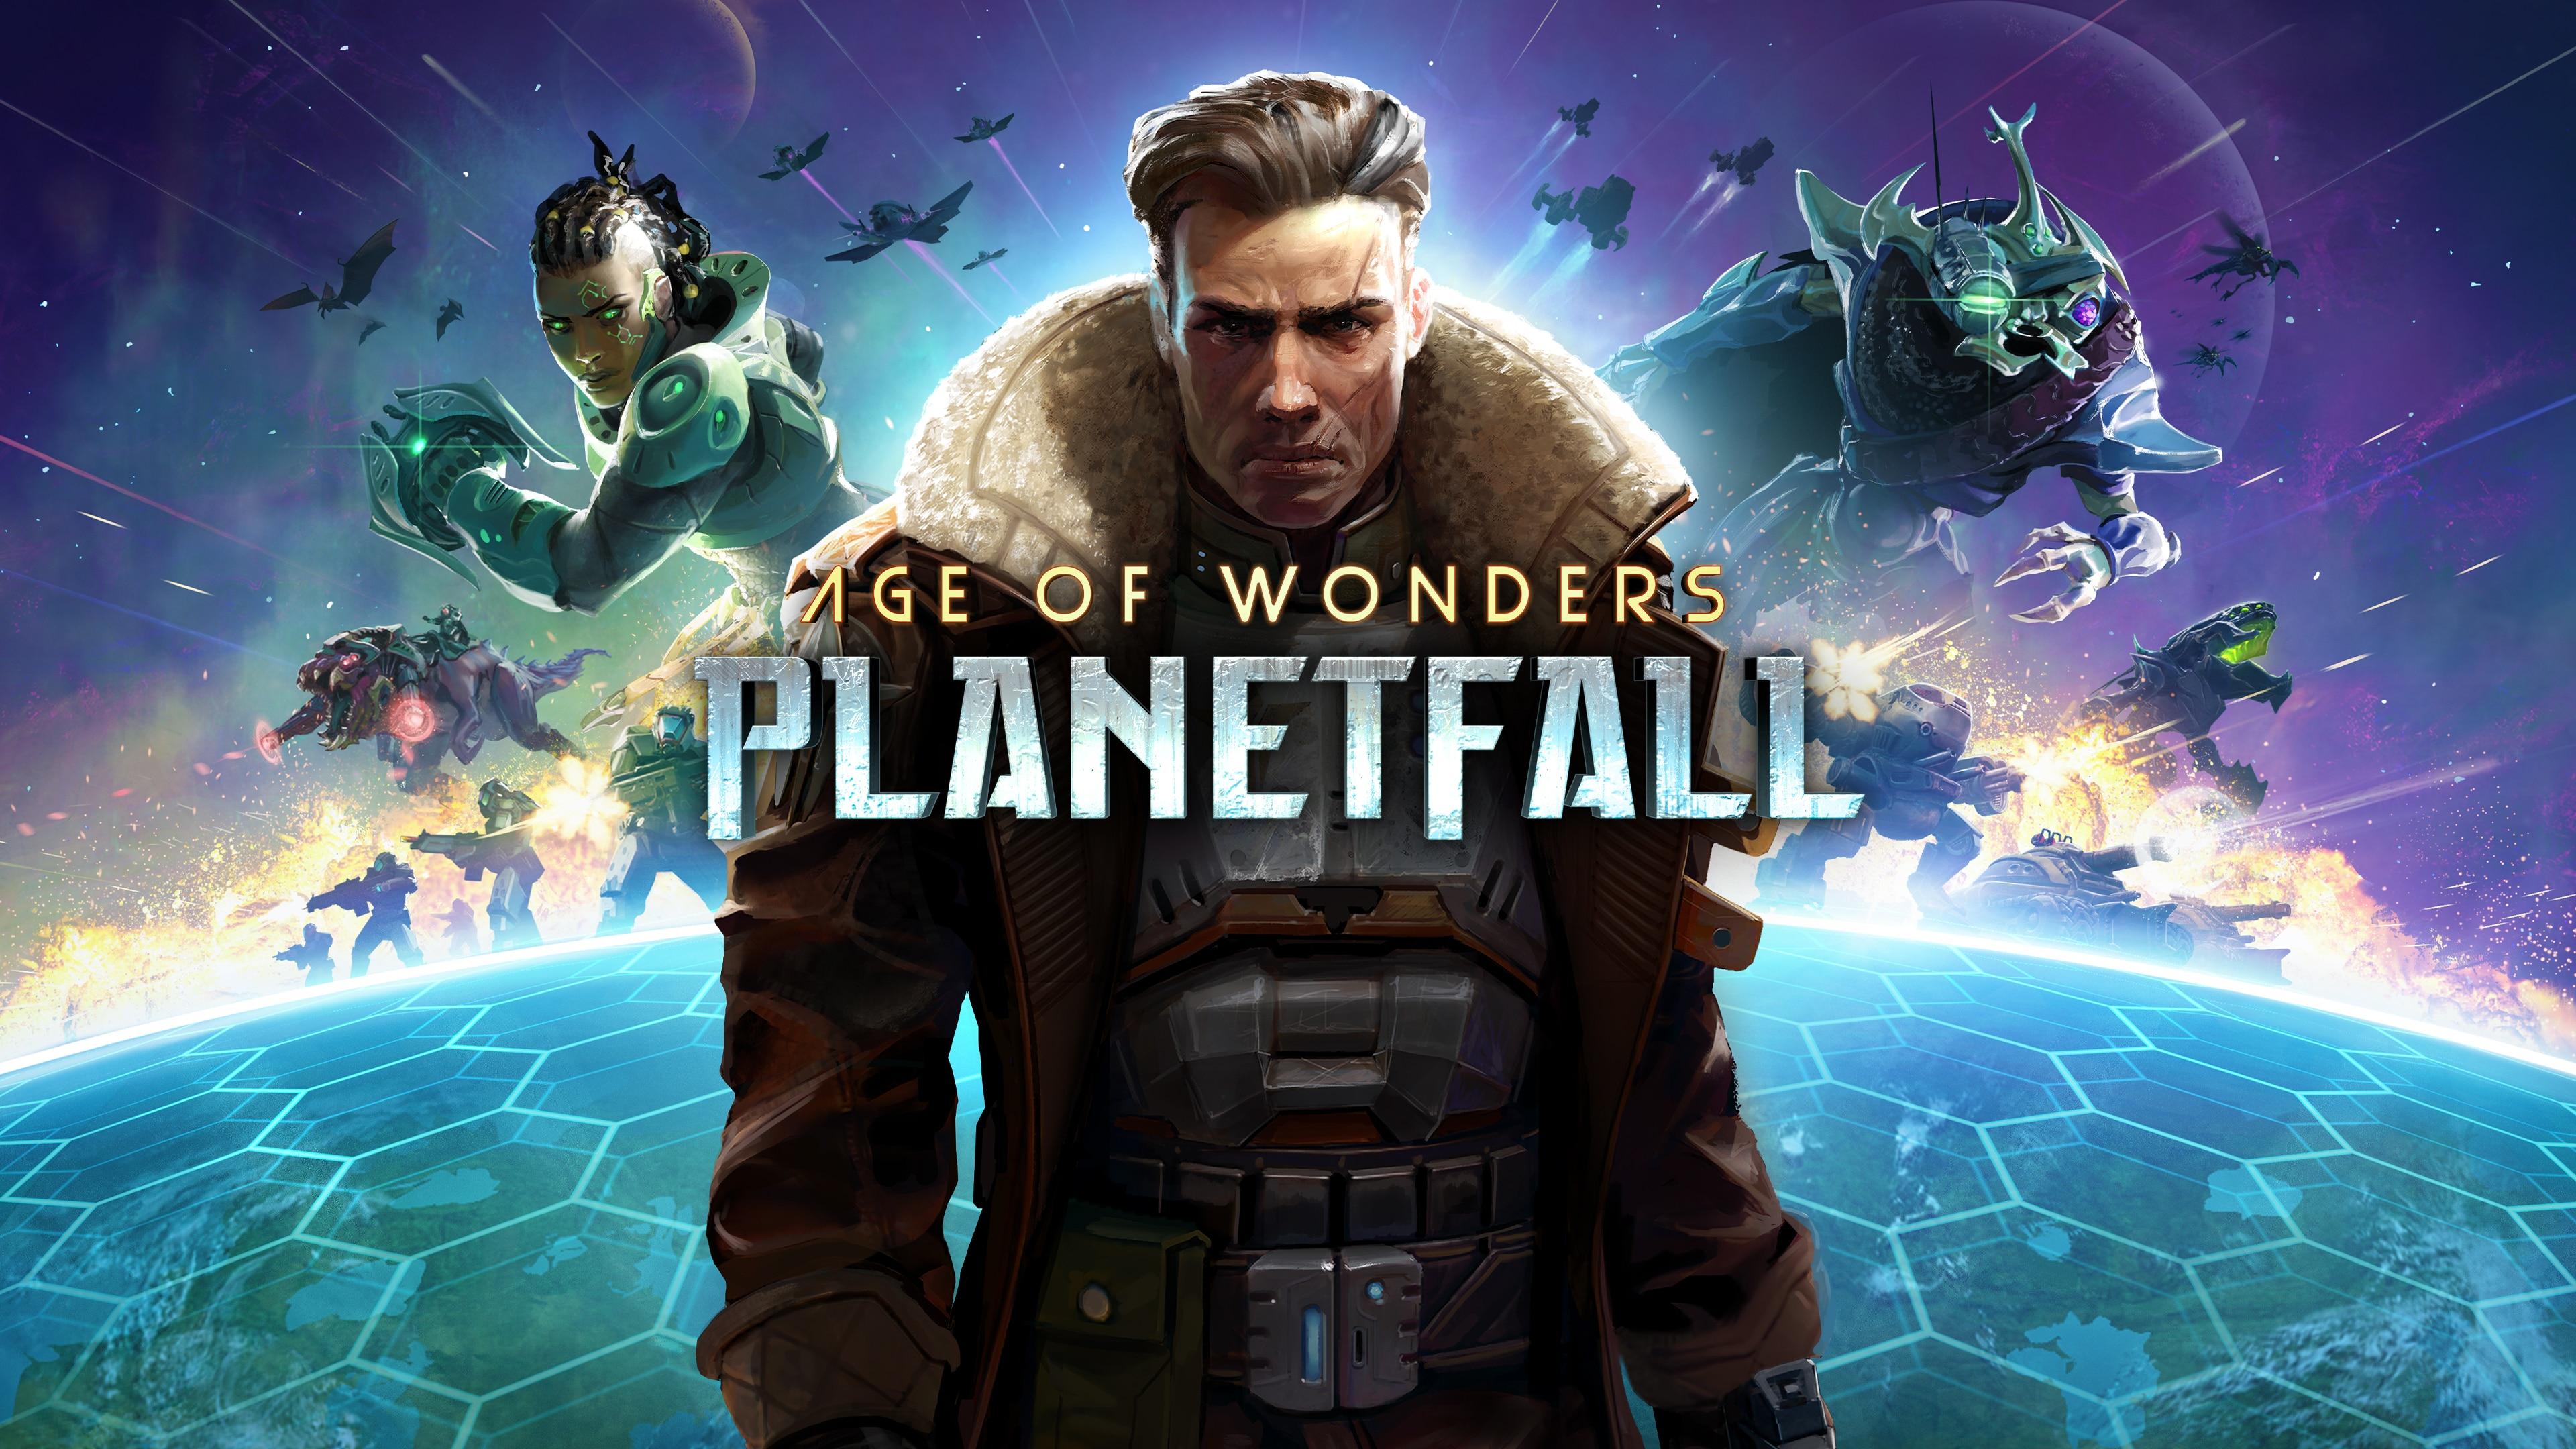 Age of Wonders: Planetfall (English, Korean)